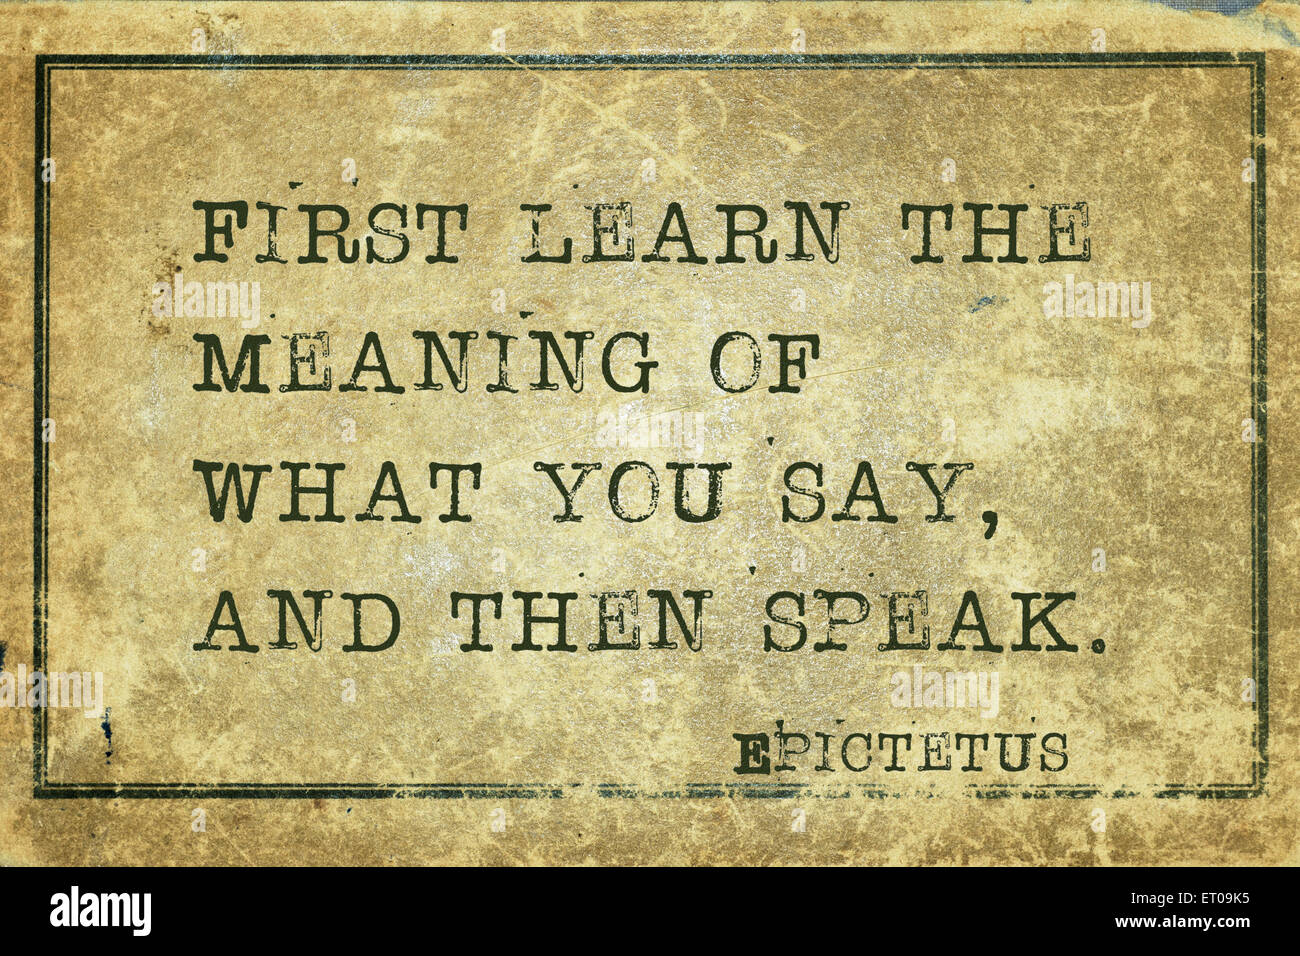 First learn the meaning of what you say - ancient Greek philosopher  Epictetus quote printed on grunge vintage cardboard 1579520b566